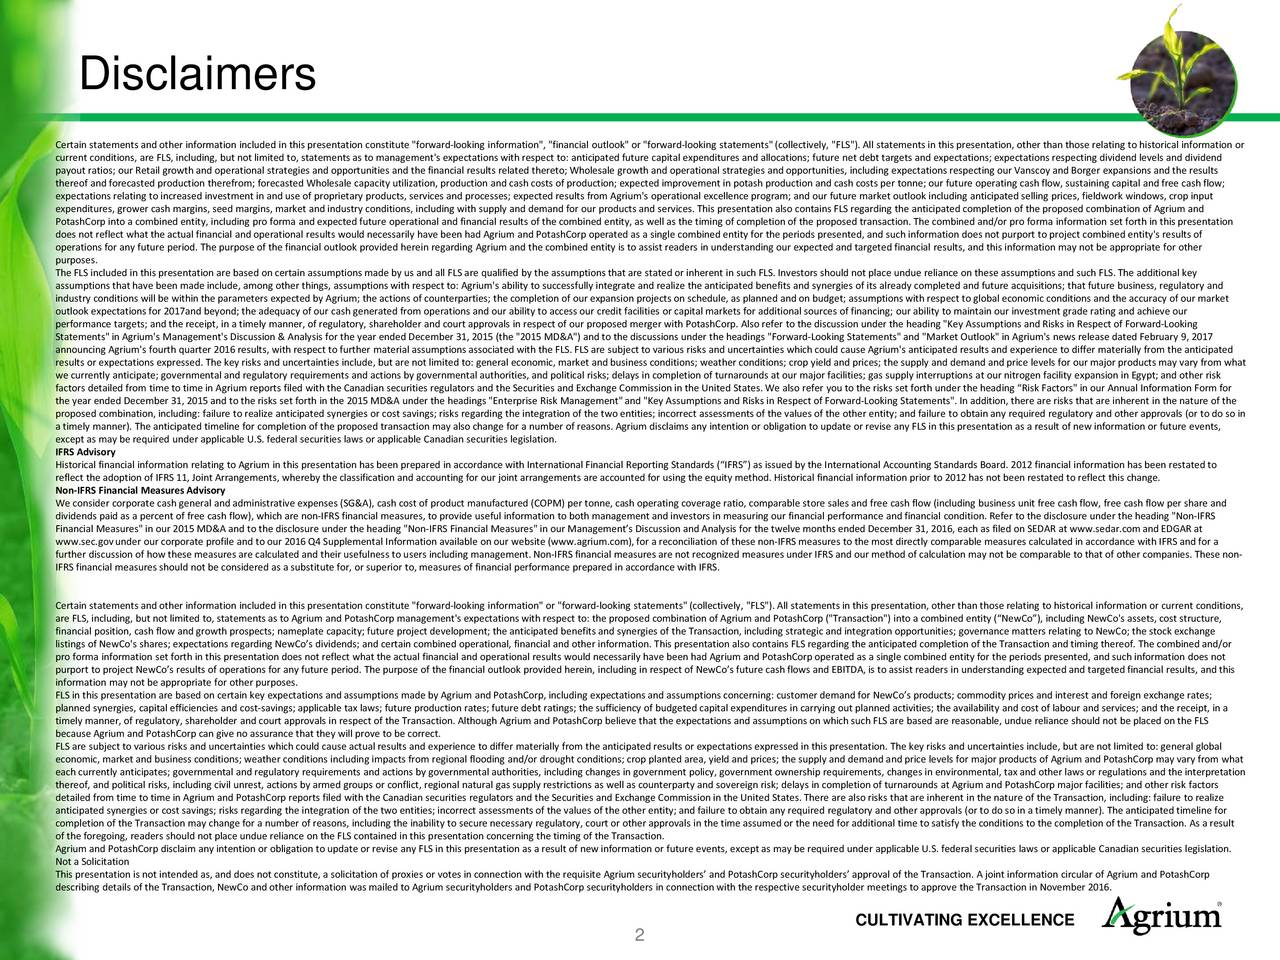 """Certain statementsand other information included in this presentation constitute """"forward-looking information"""", """"financial outlook"""" or """"forward-looking statements""""(collectively, """"FLS""""). All statements in this presentation, other than those relating to historical information or current conditions, are FLS, including, but not limited to, statementsas to management's expectationswith respect to: anticipated future capital expenditures and allocations; future net debt targets and expectations; expectations respecting dividendelvels and dividend payout ratios; our Retail growth and operational strategies and opportunities and the financial results related thereto; Wholesale growth andoperational strategies andopportunities, including expectations respecting our Vanscoyand Borger expansions and the results thereof andforecasted production therefrom; forecasted Wholesale capacity utilization, production andcashcosts of production; expected improvement in potash production and cash costs per tonne; our future operating cash flow, sustaining capital and fere cash flow; expectations relating to increased investment in and use of proprietary products, services and processes; expected results from Agrium's operational excellenceprogram; and our future market outlook including anticipatedselling prices, fieldwork windows, crop input expenditures, grower cash margins, seed margins, market and industry conditions, including with supply and demand for our products and services. This presentation also contains FLS regarding the anticipated completion of the proposed combination of Agrium and PotashCorp into a combined entity, including pro forma and expected future operational and financial results of the combined entity, as well as the timing of completion of the proposed transaction. The combined and/or pro forma information set forth in this presentation does not reflect what the actual financial and operational results would necessarily have been had Agrium and PotashCorp opeart"""